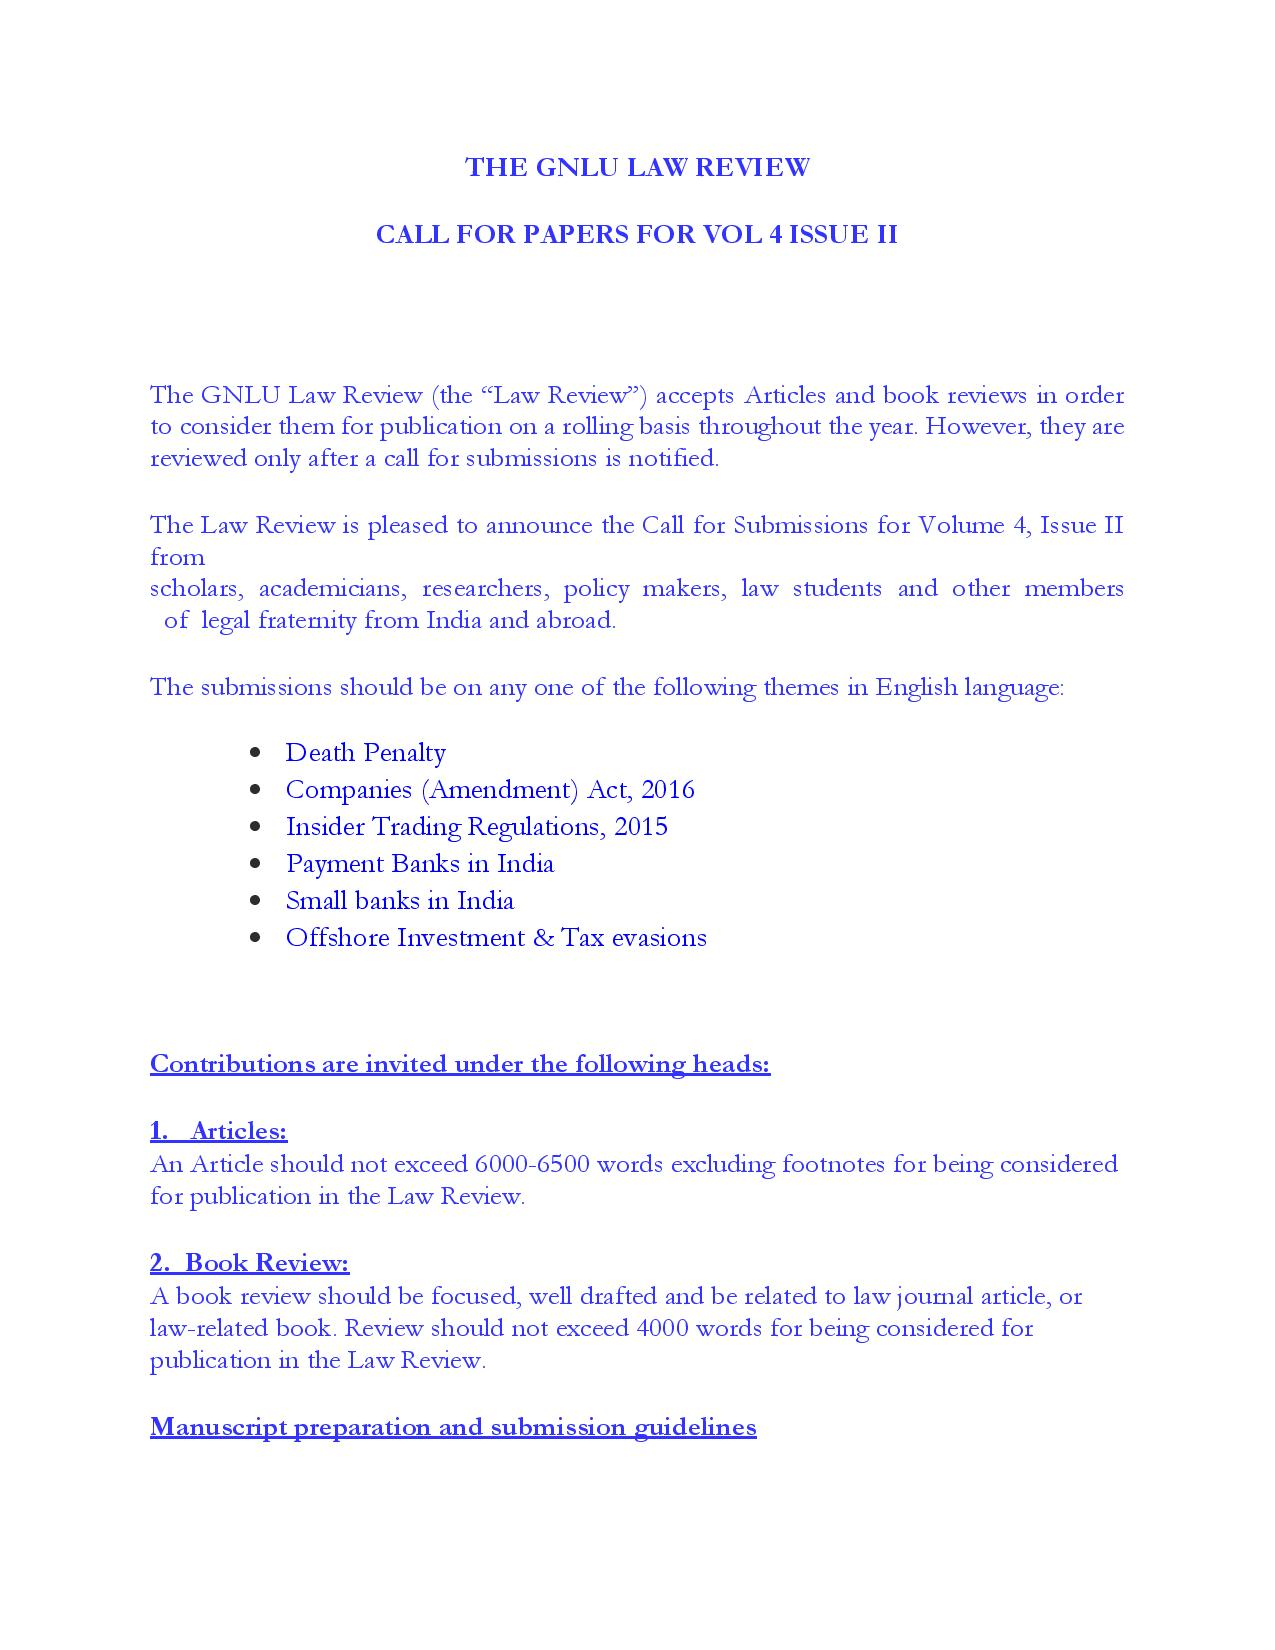 Call for Papers; The GNLU Law Review Vol 4 Issue II